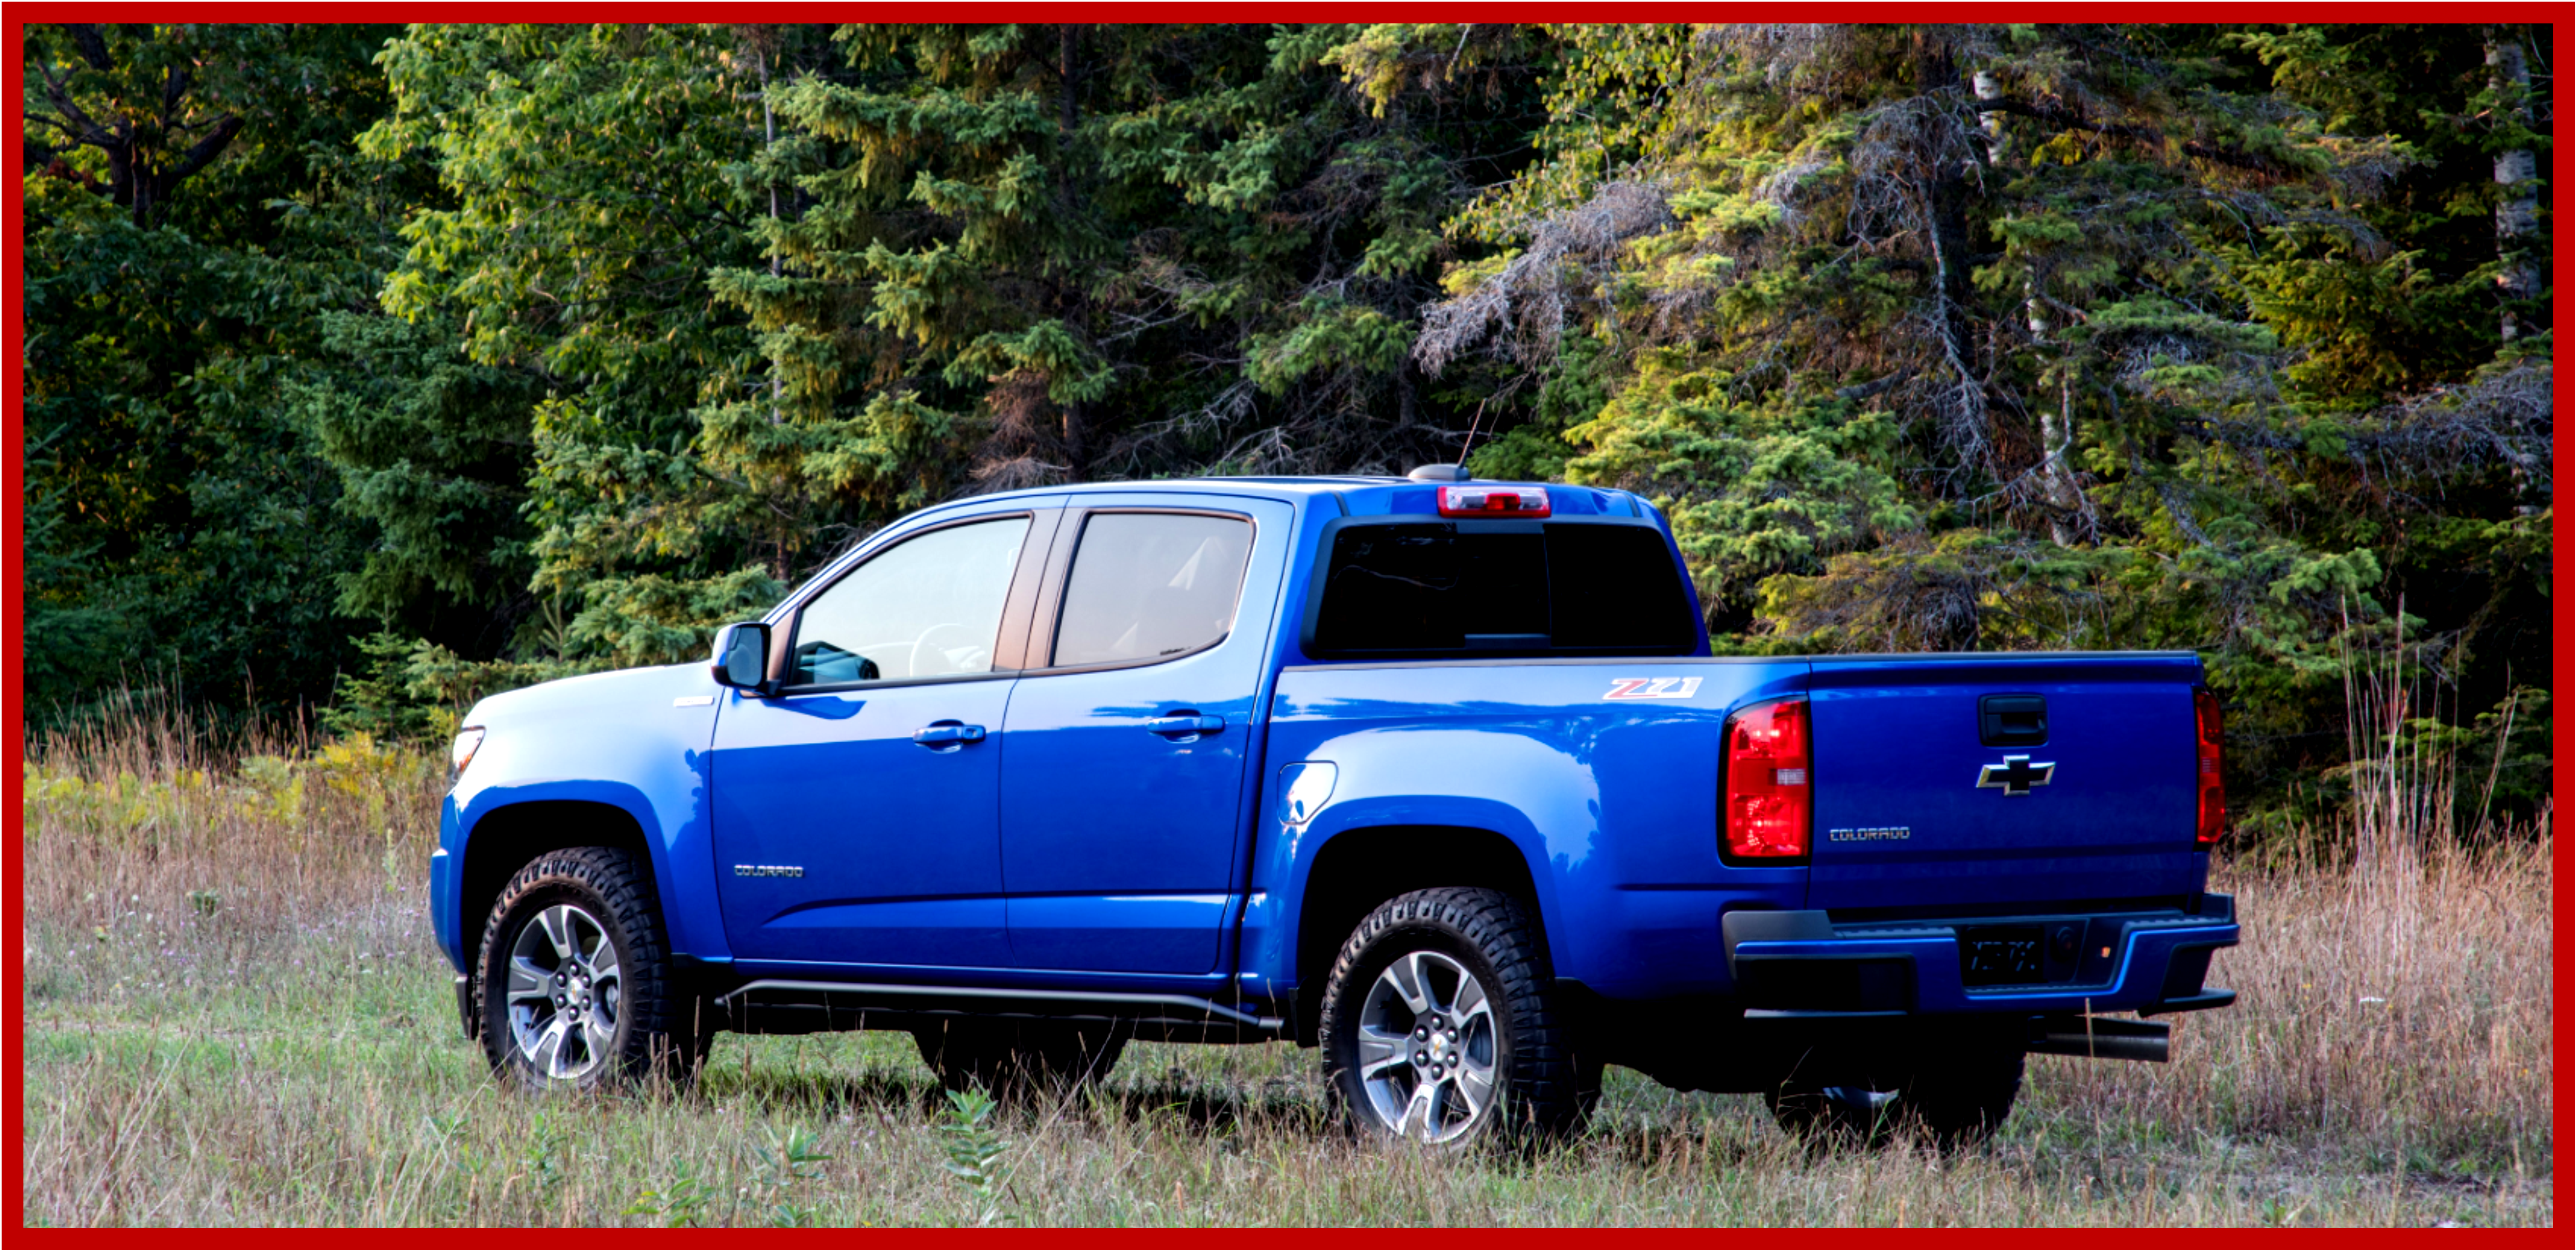 AutoInformed.com on 2019 Chevy Z71 Colorado Trail Runner